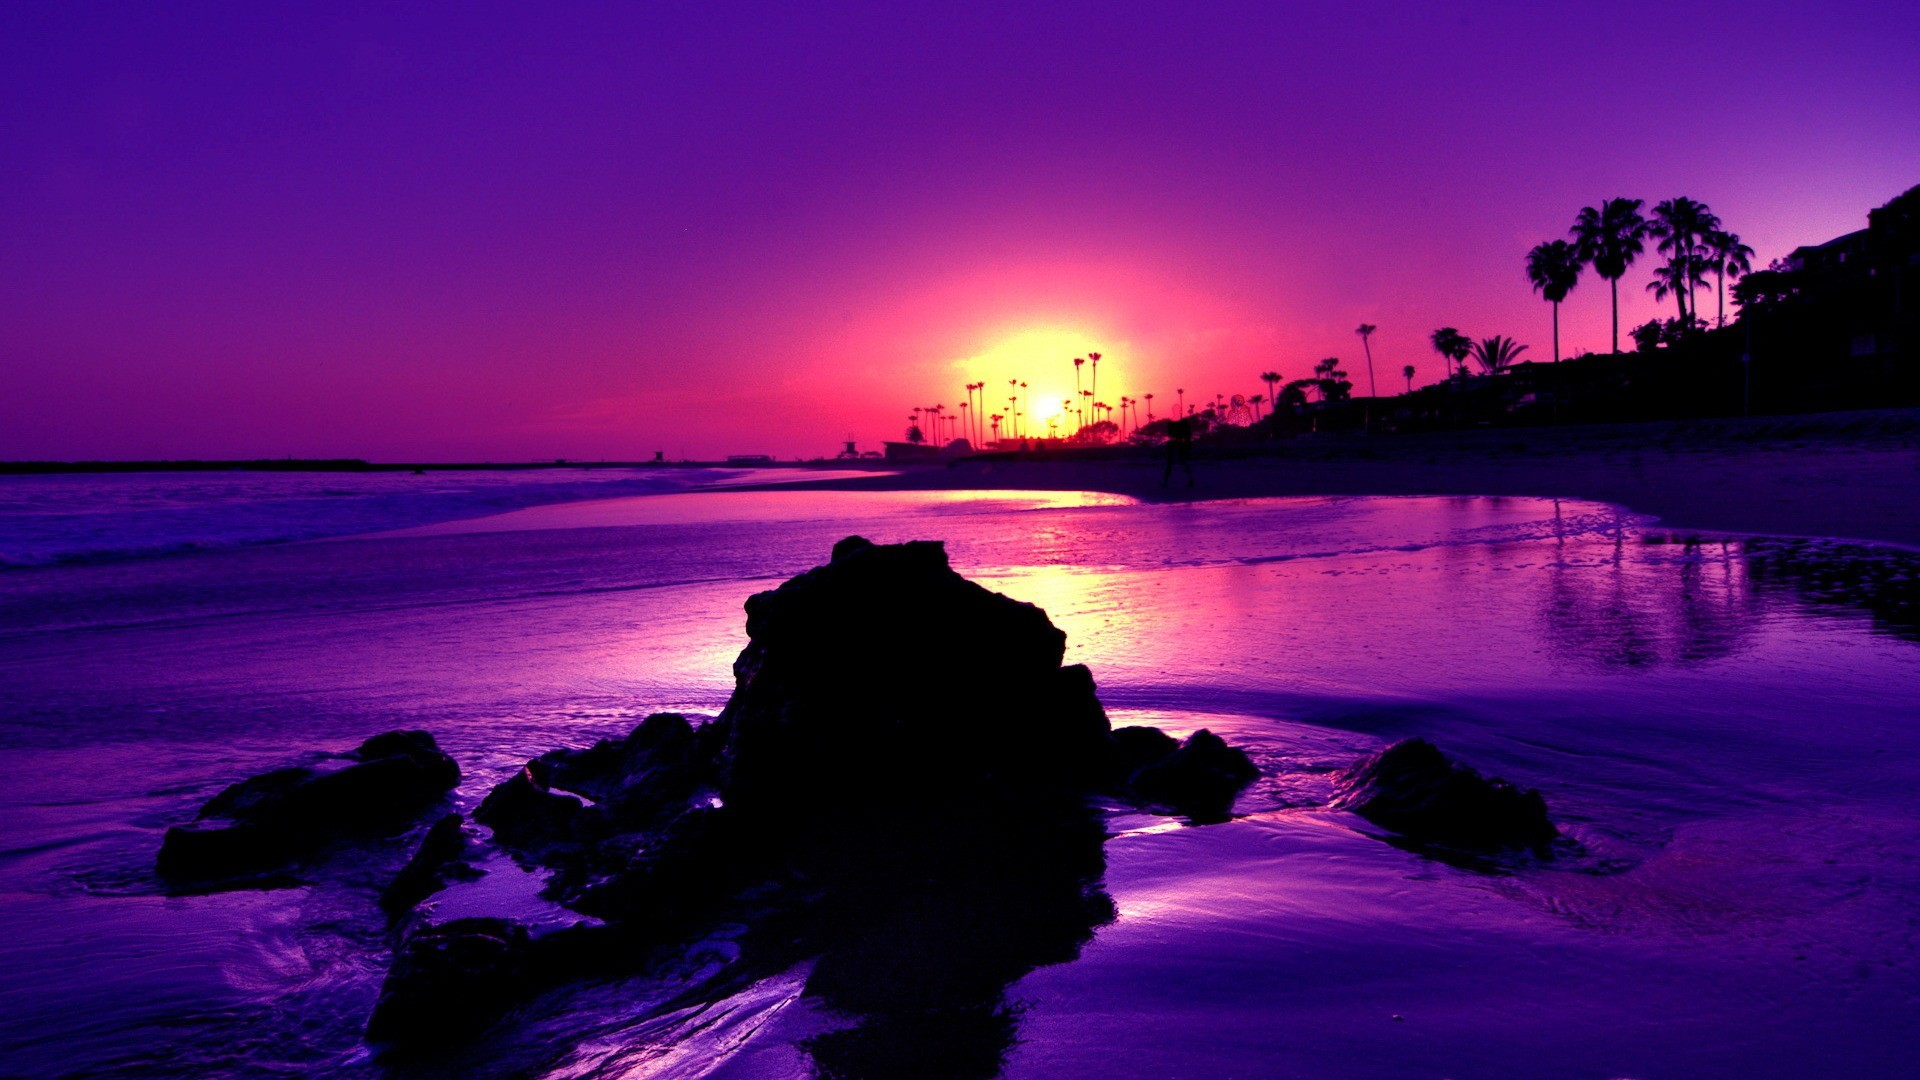 Res: 1920x1080, Perfect 66 Purple Beach Sunset Wallpaper Iphone For Desktop PC laptop  Android Desktop Iphone and Tablet